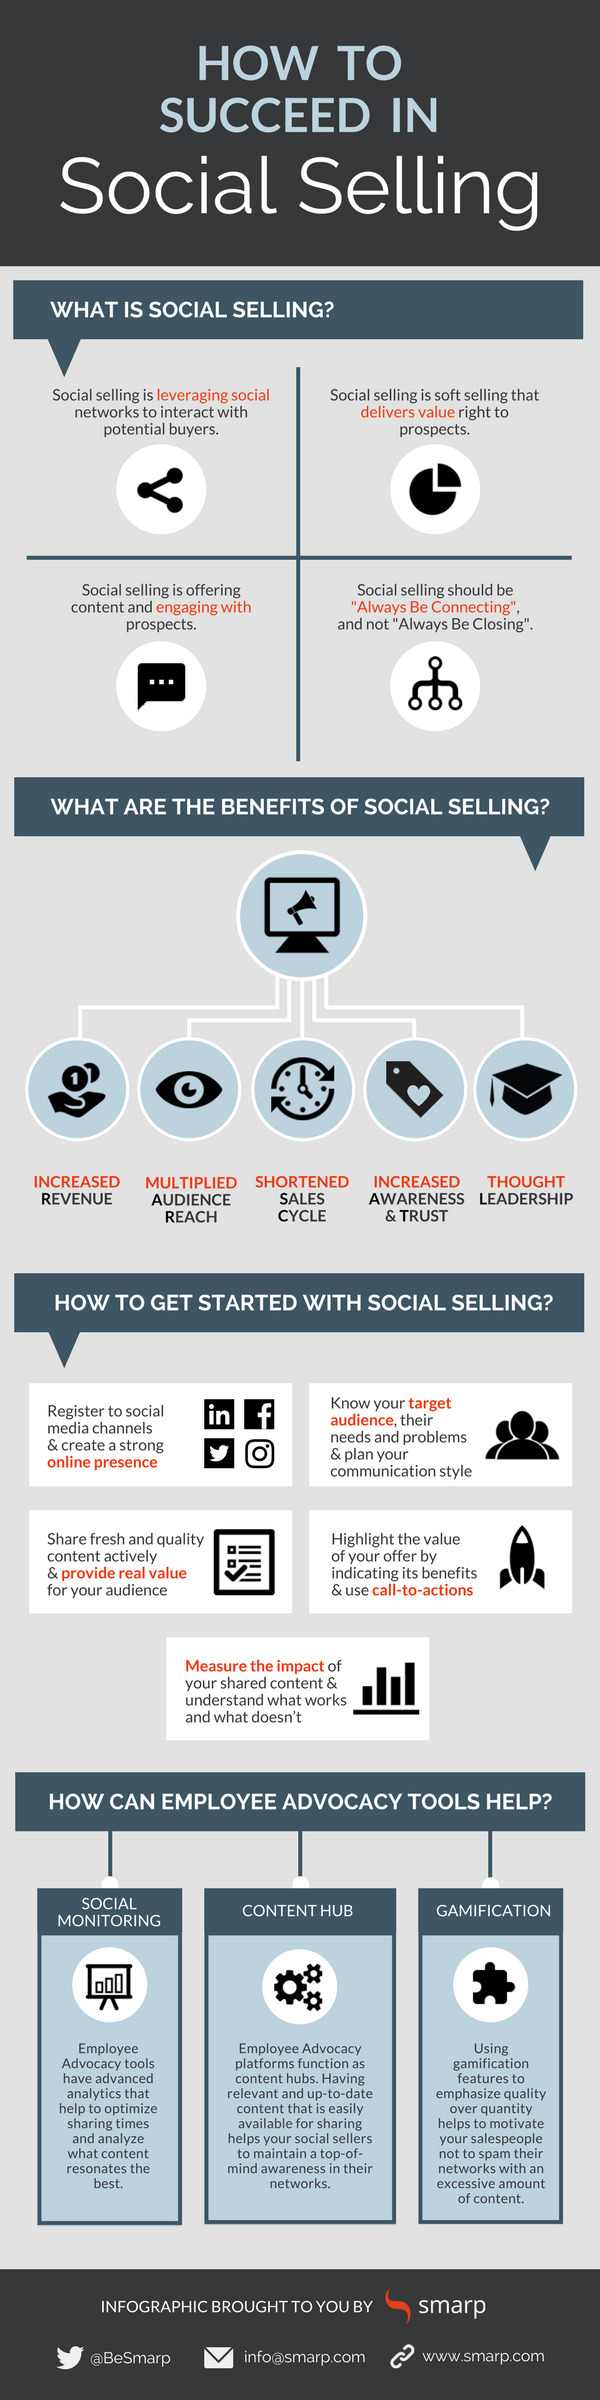 intranets lack social selling features